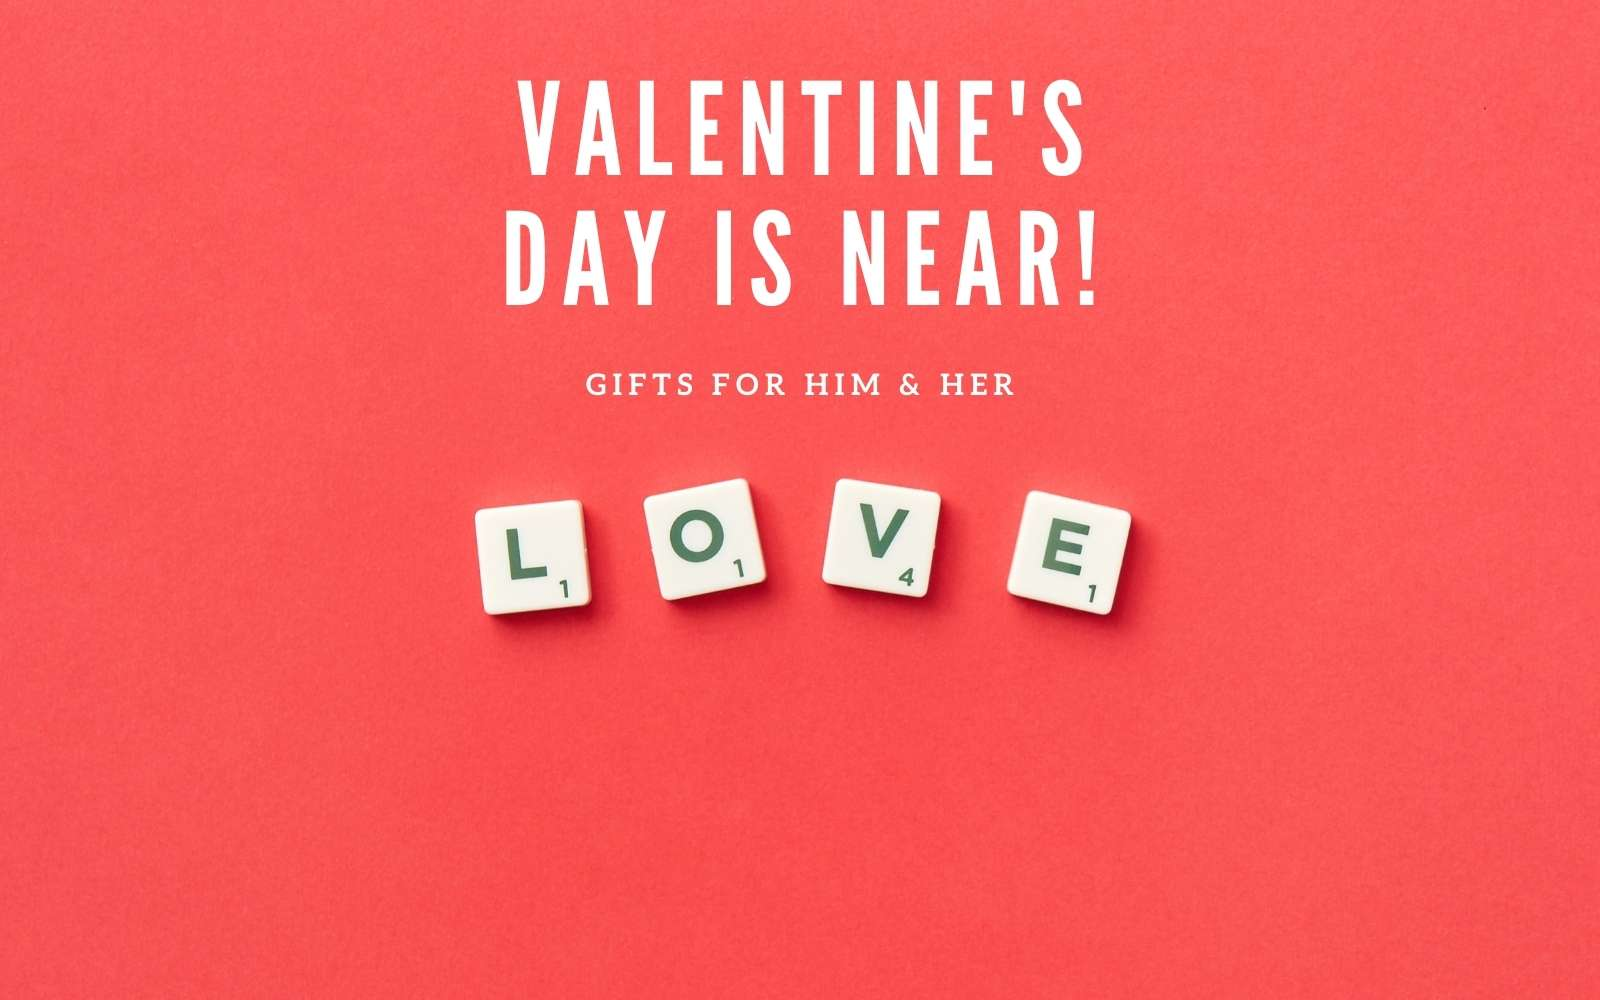 Valentines gift for him and for her. Solid based fragrances that are a perfect unique present this valentines day. Get your loved ones something they want this year. Free postage to UK and delivered to your doorstep.